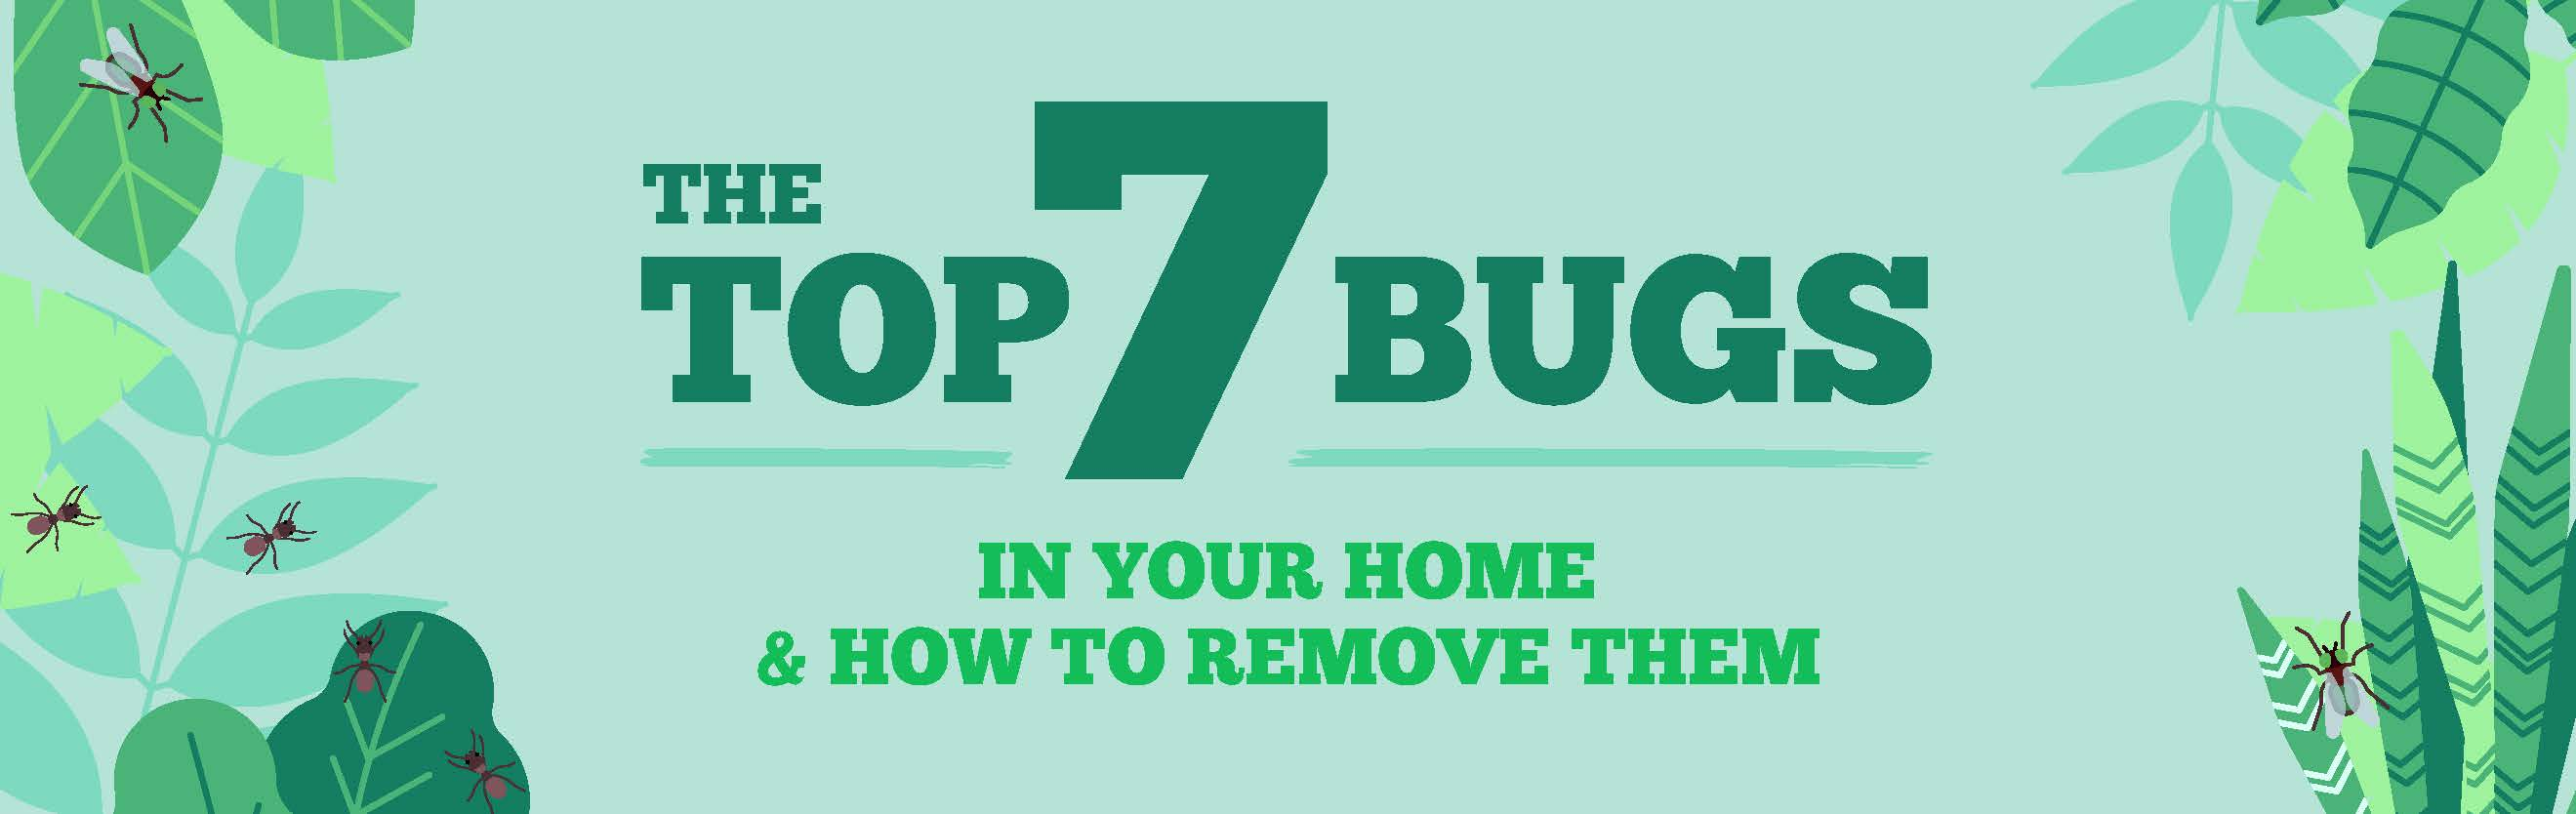 the top 7 bugs in your home and how to remove them title image